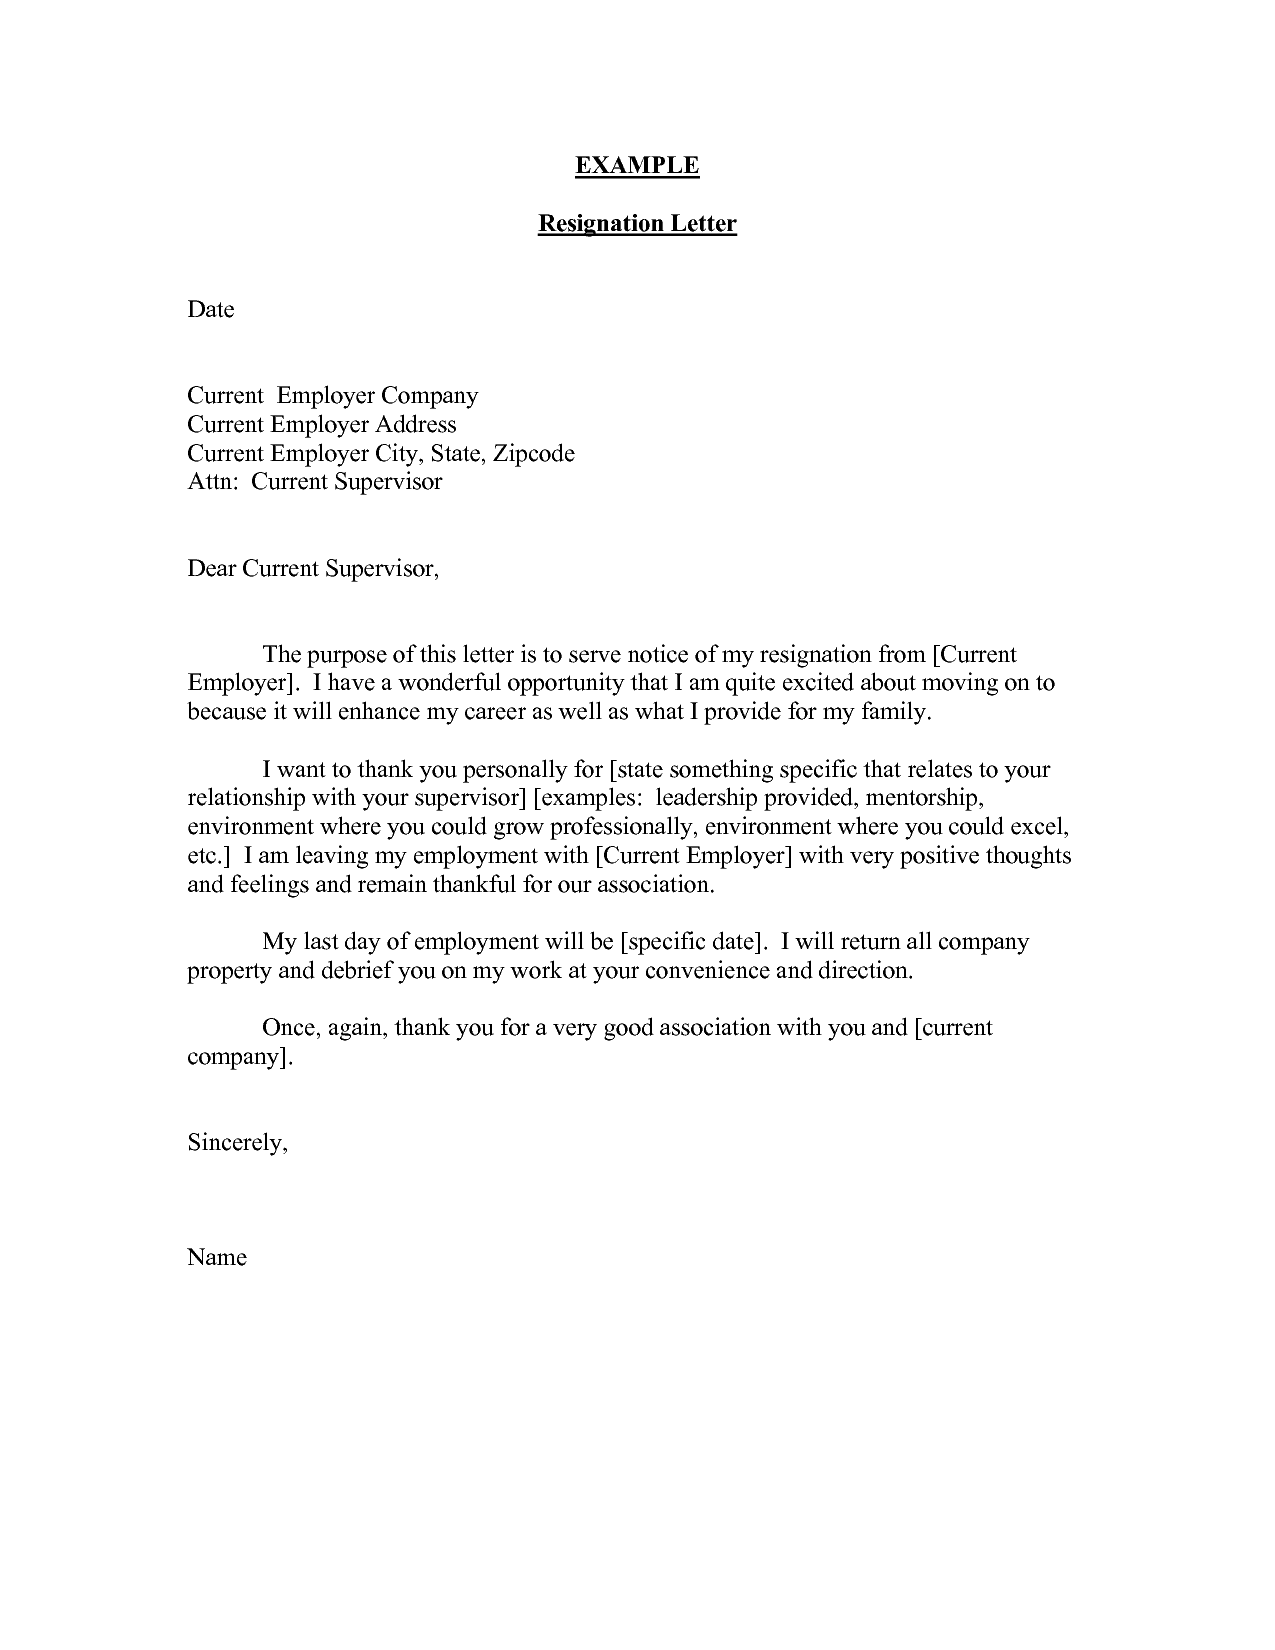 Formal letter format sample doc resignation letter format top professional resignation spiritdancerdesigns Image collections